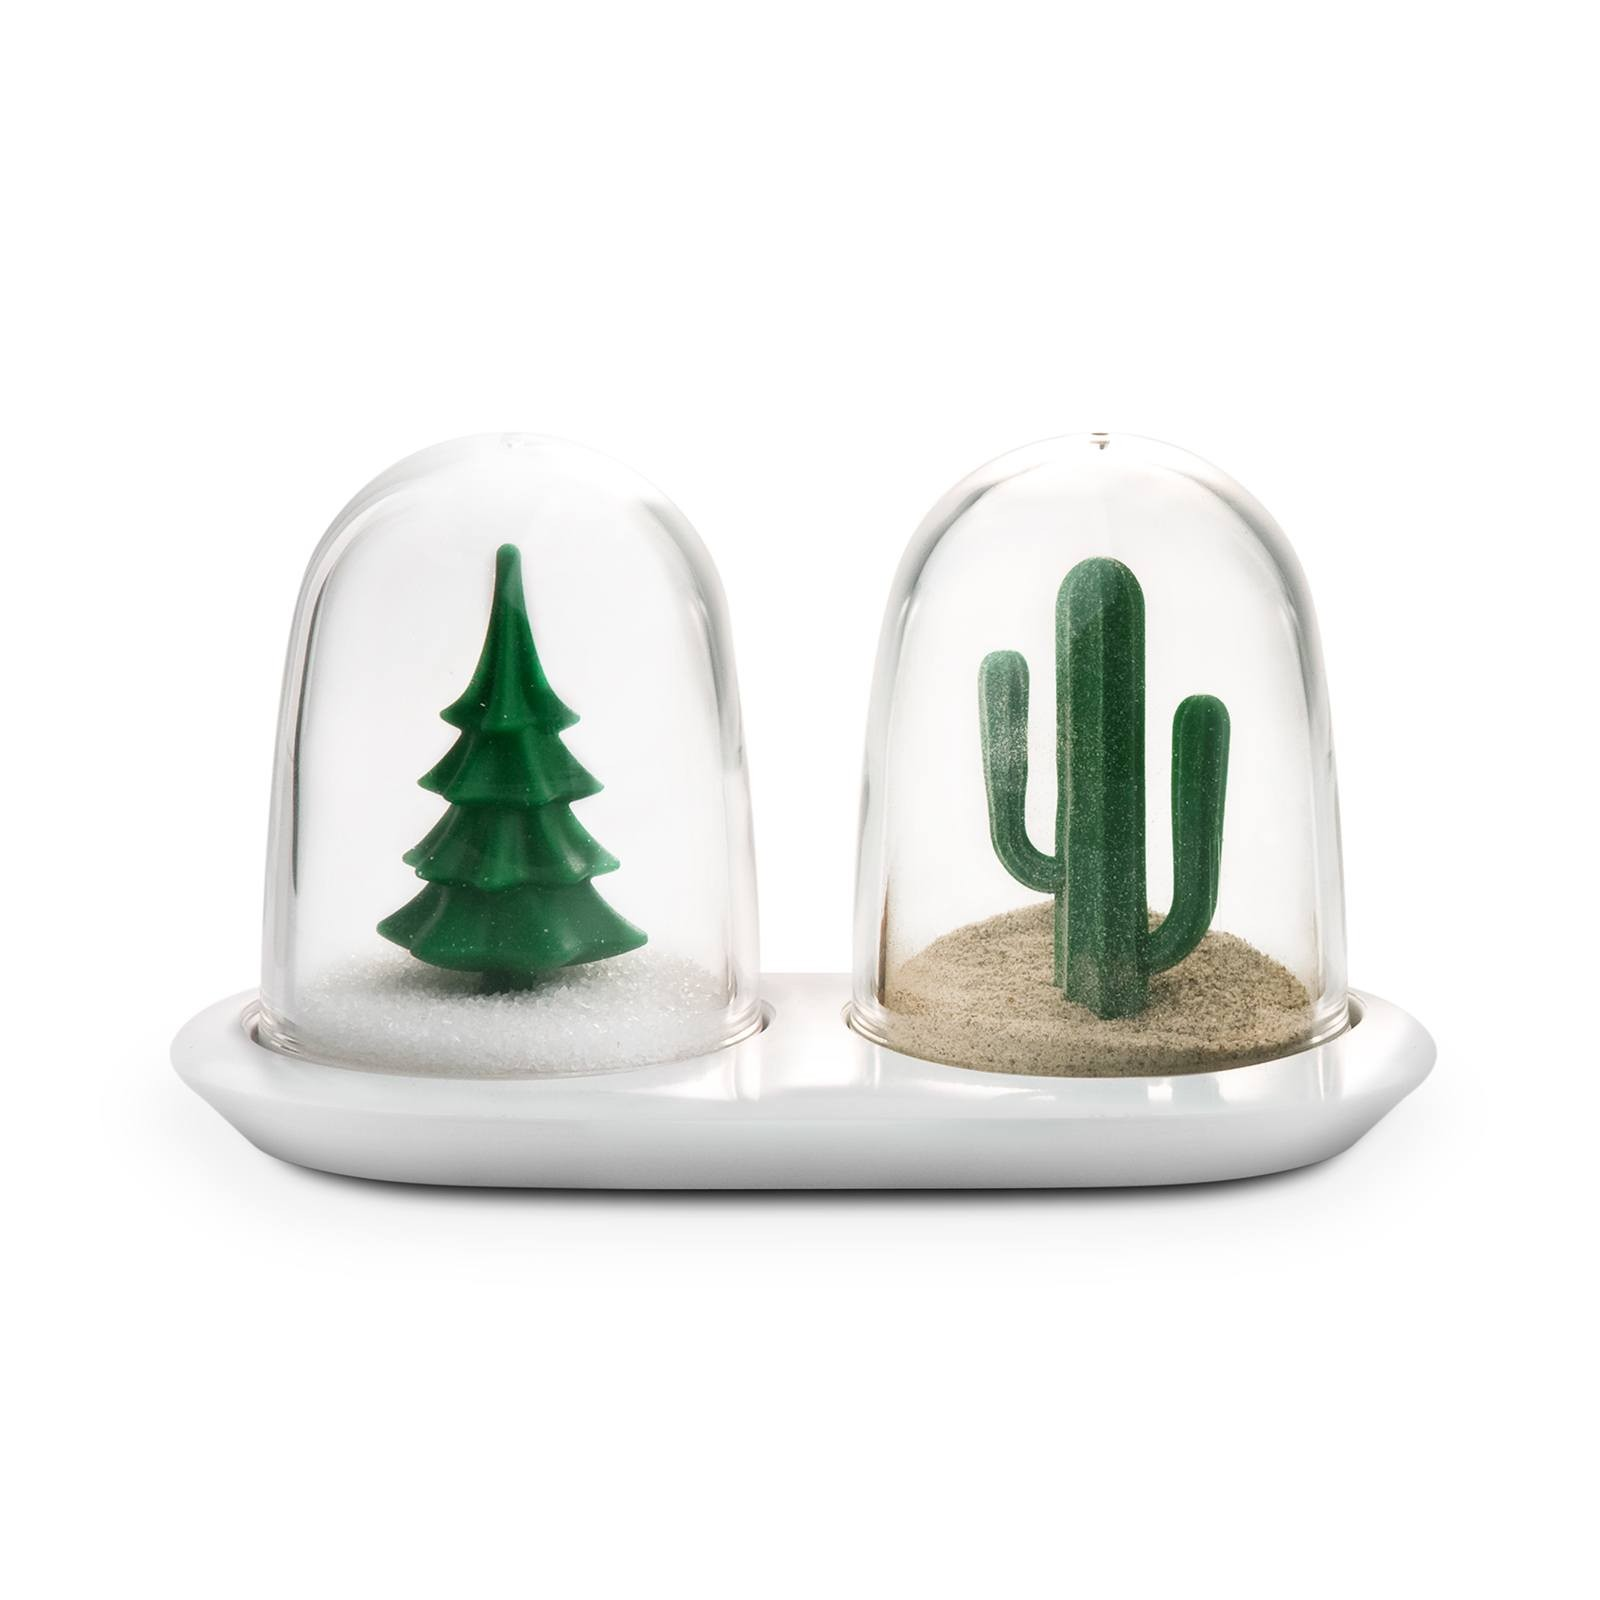 Winter And Summer Salt & Pepper Shakers (Set of 2) - Qualy